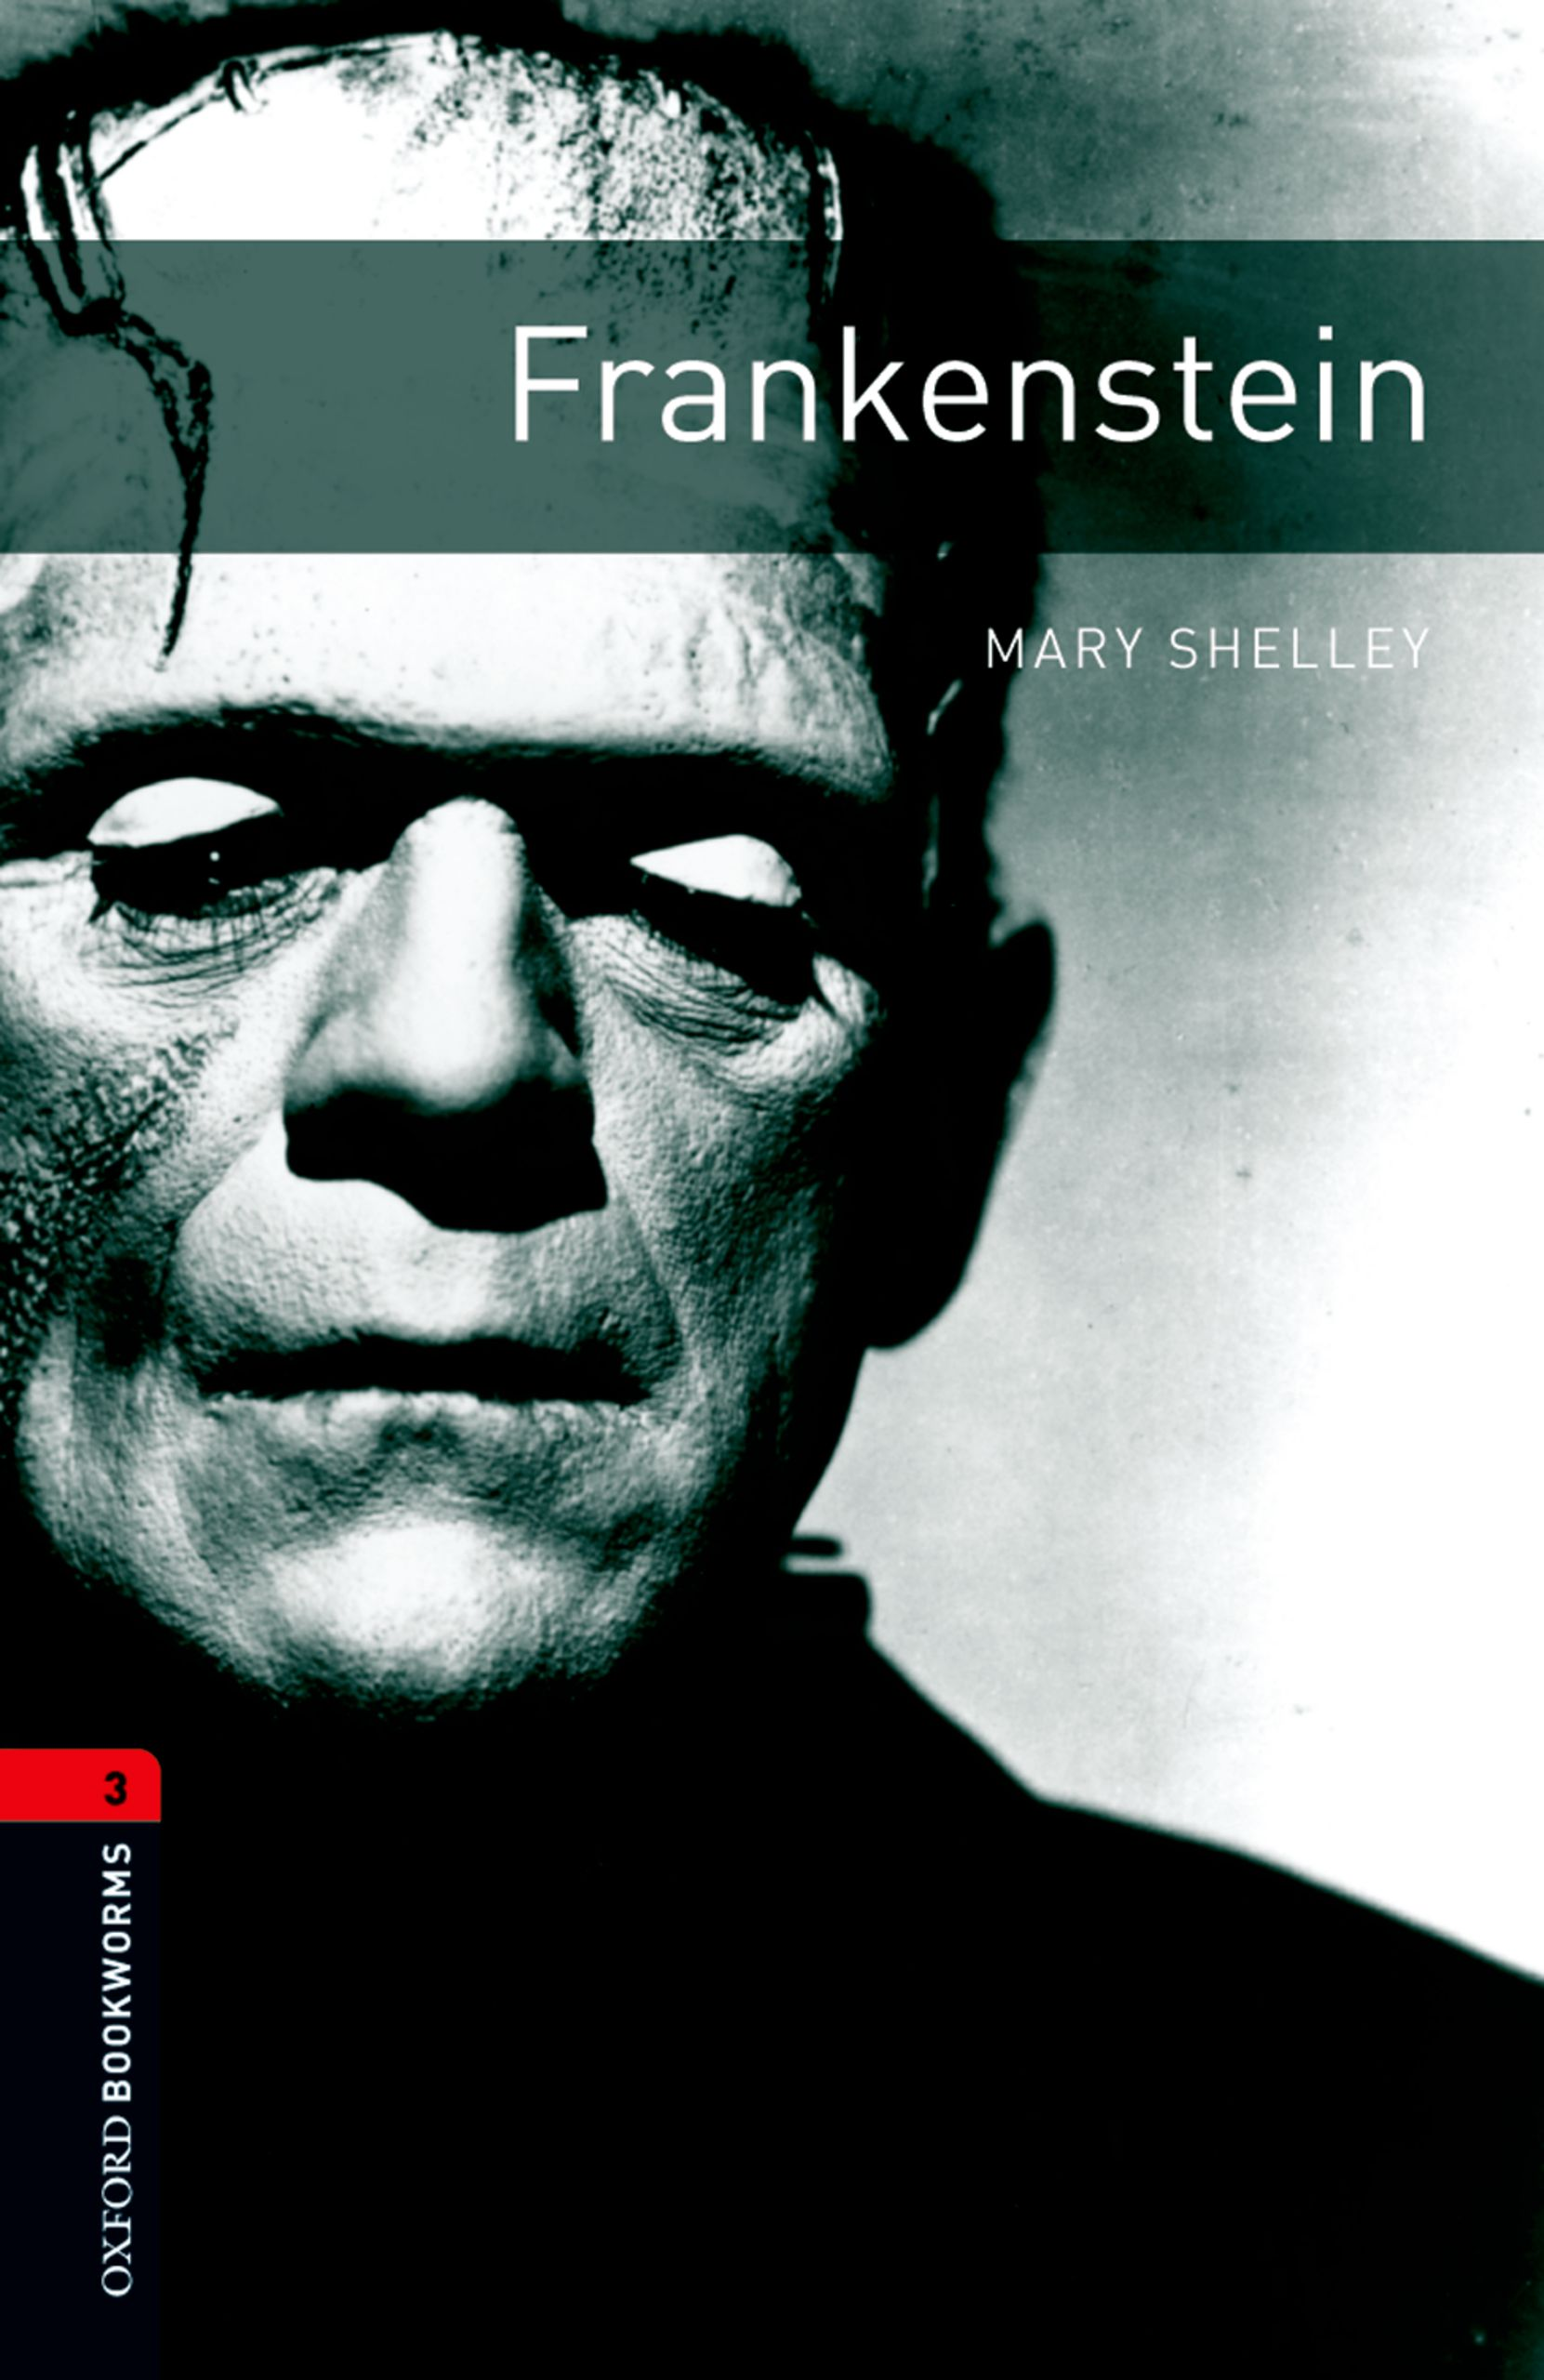 Mary Shelley Frankenstein victor branford the coming polity a study in reconstruction by victor branford and patrick geddes